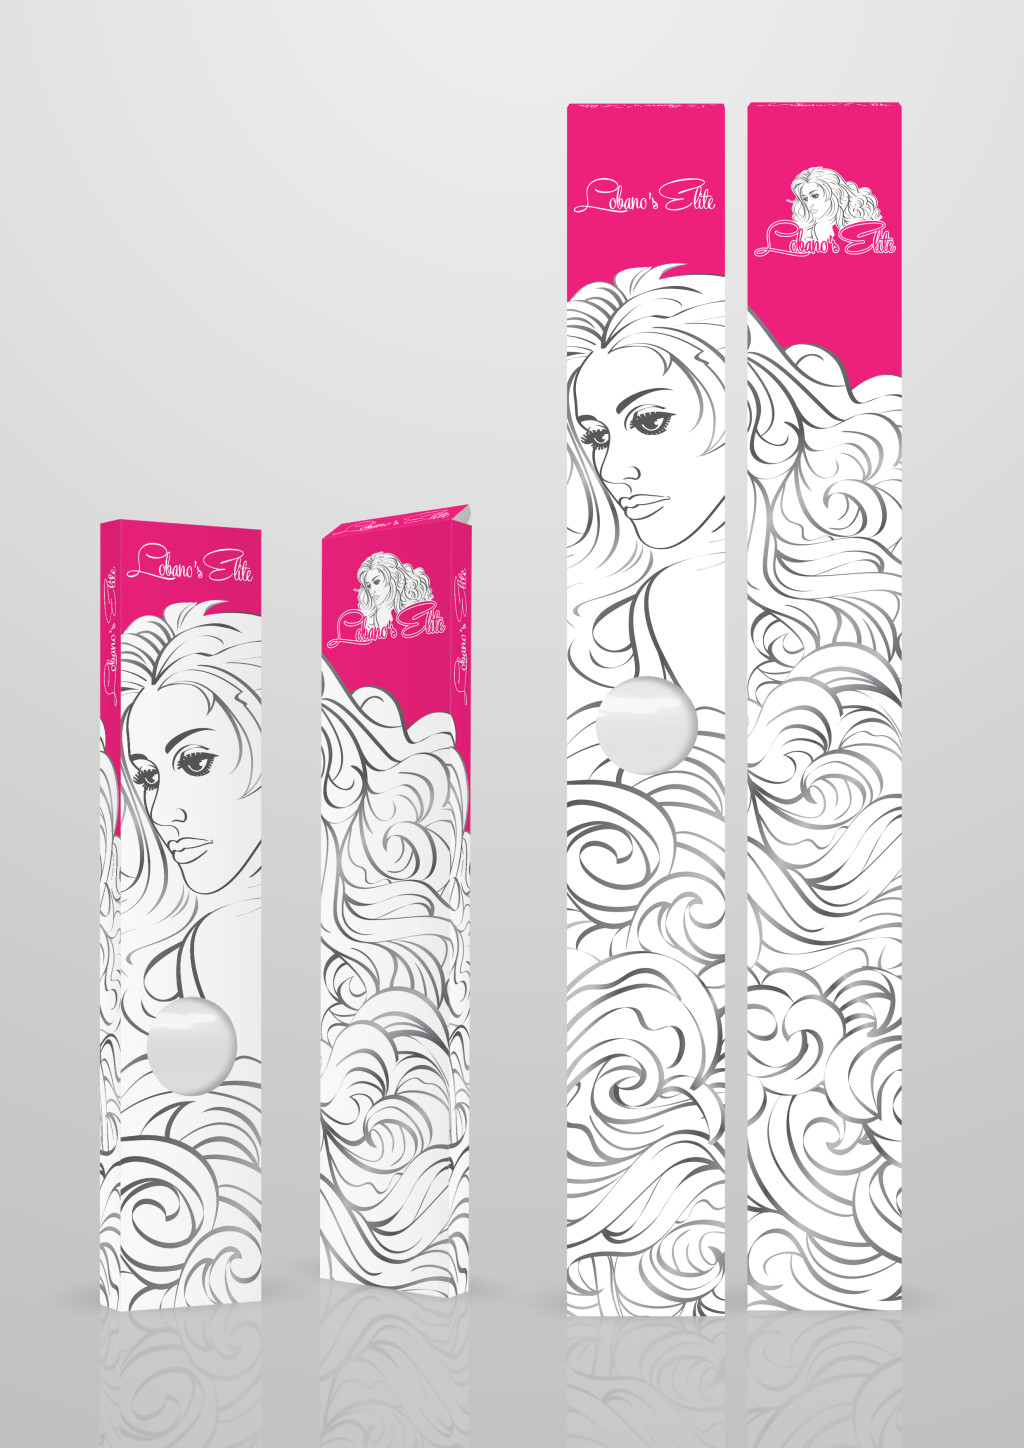 The front and back of two lengths of a hair extension box. The different lengths of each box allow a range of hair extensions lengths. The boxes also have small plastic windows so the color and texture of the hair can be seen.